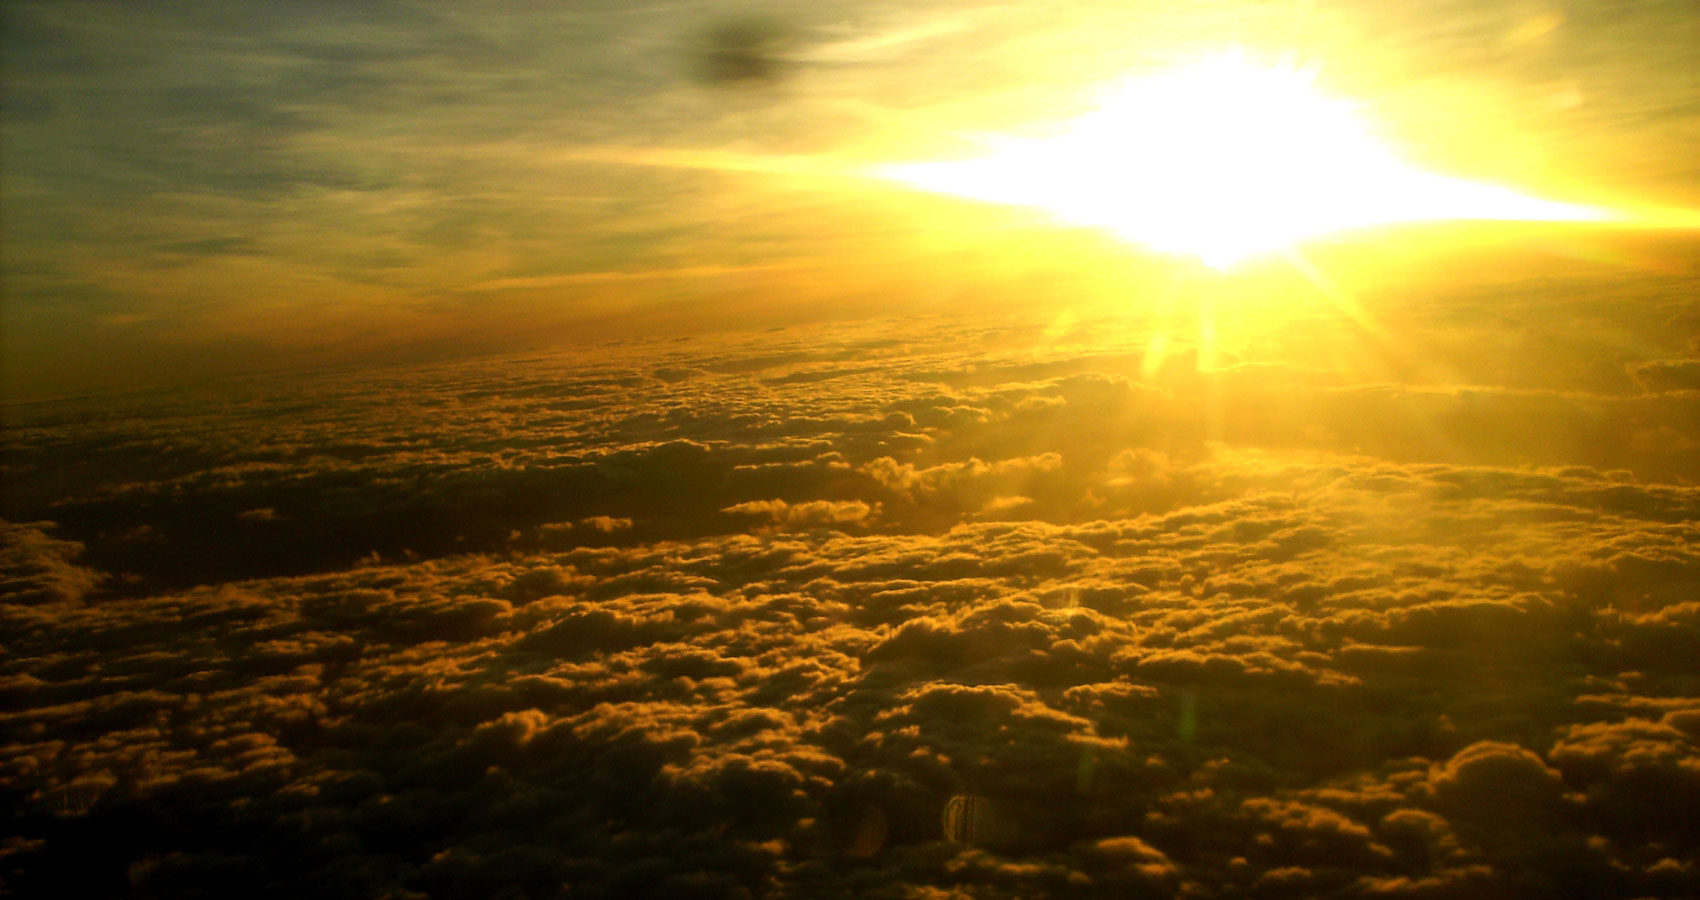 Heaven Isn't Too Far Away, written by Mario William Vitale at Spillwords.com